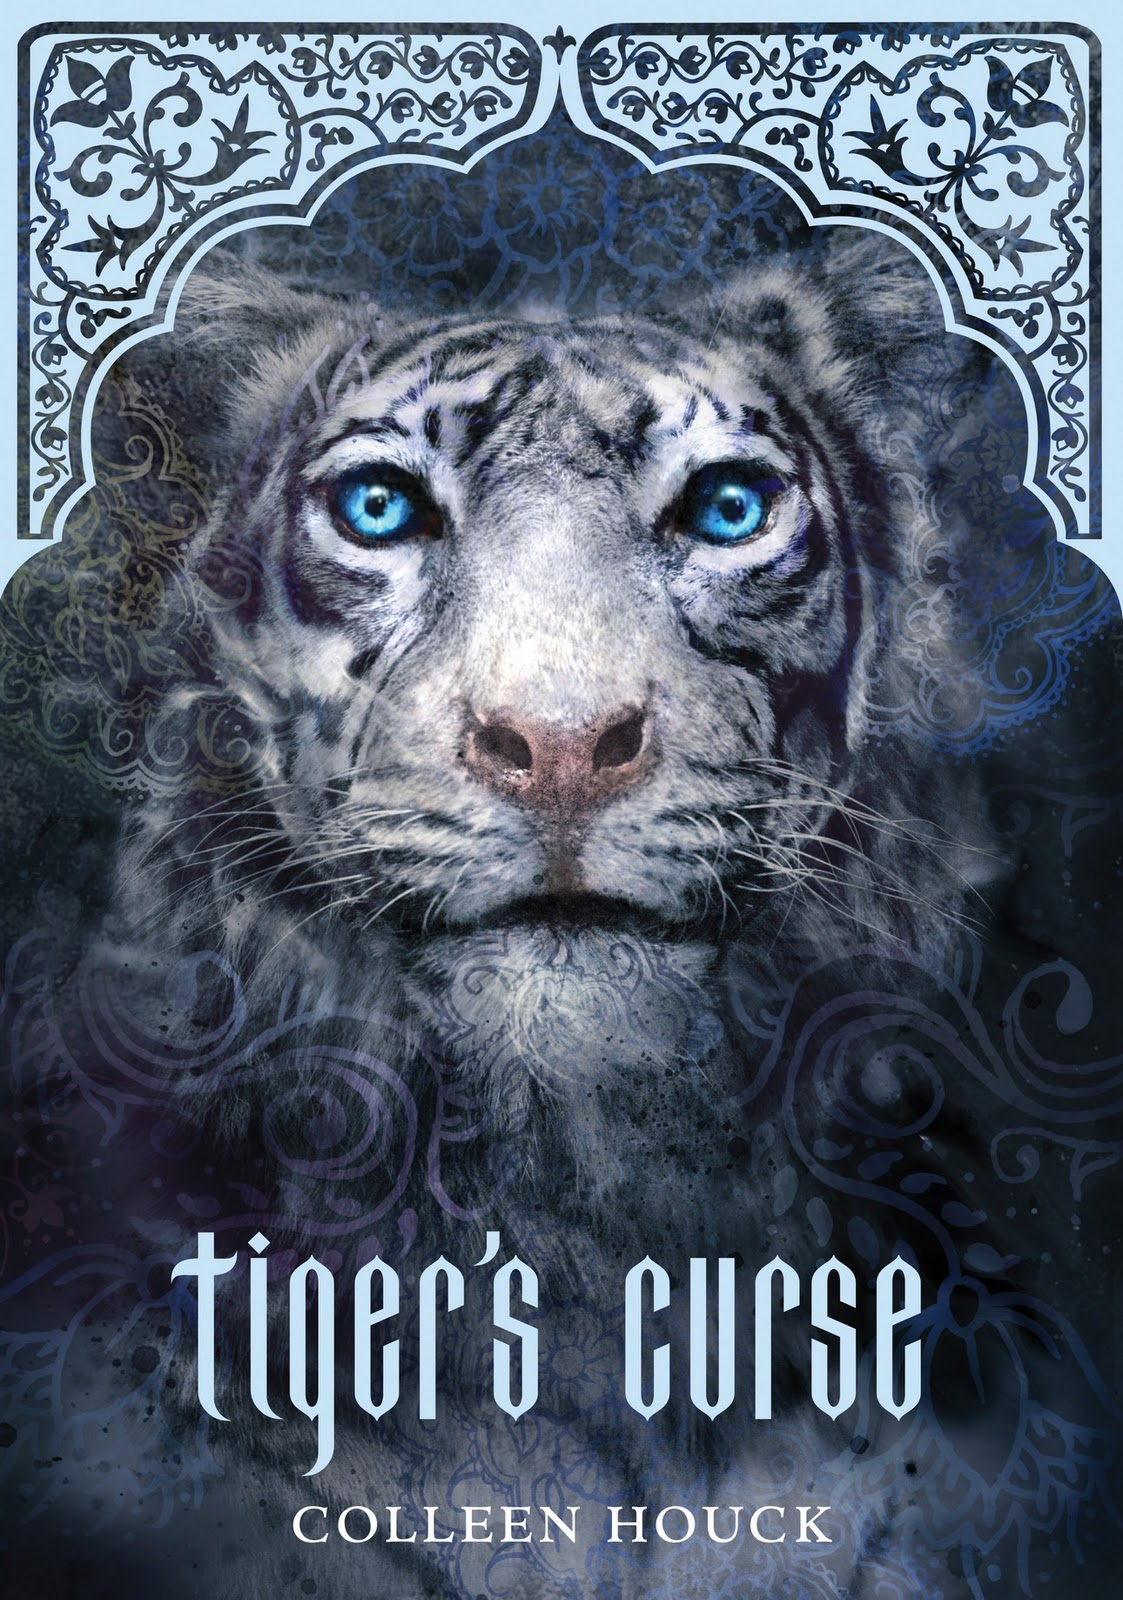 Read tigers curse by colleen houck online dating 1